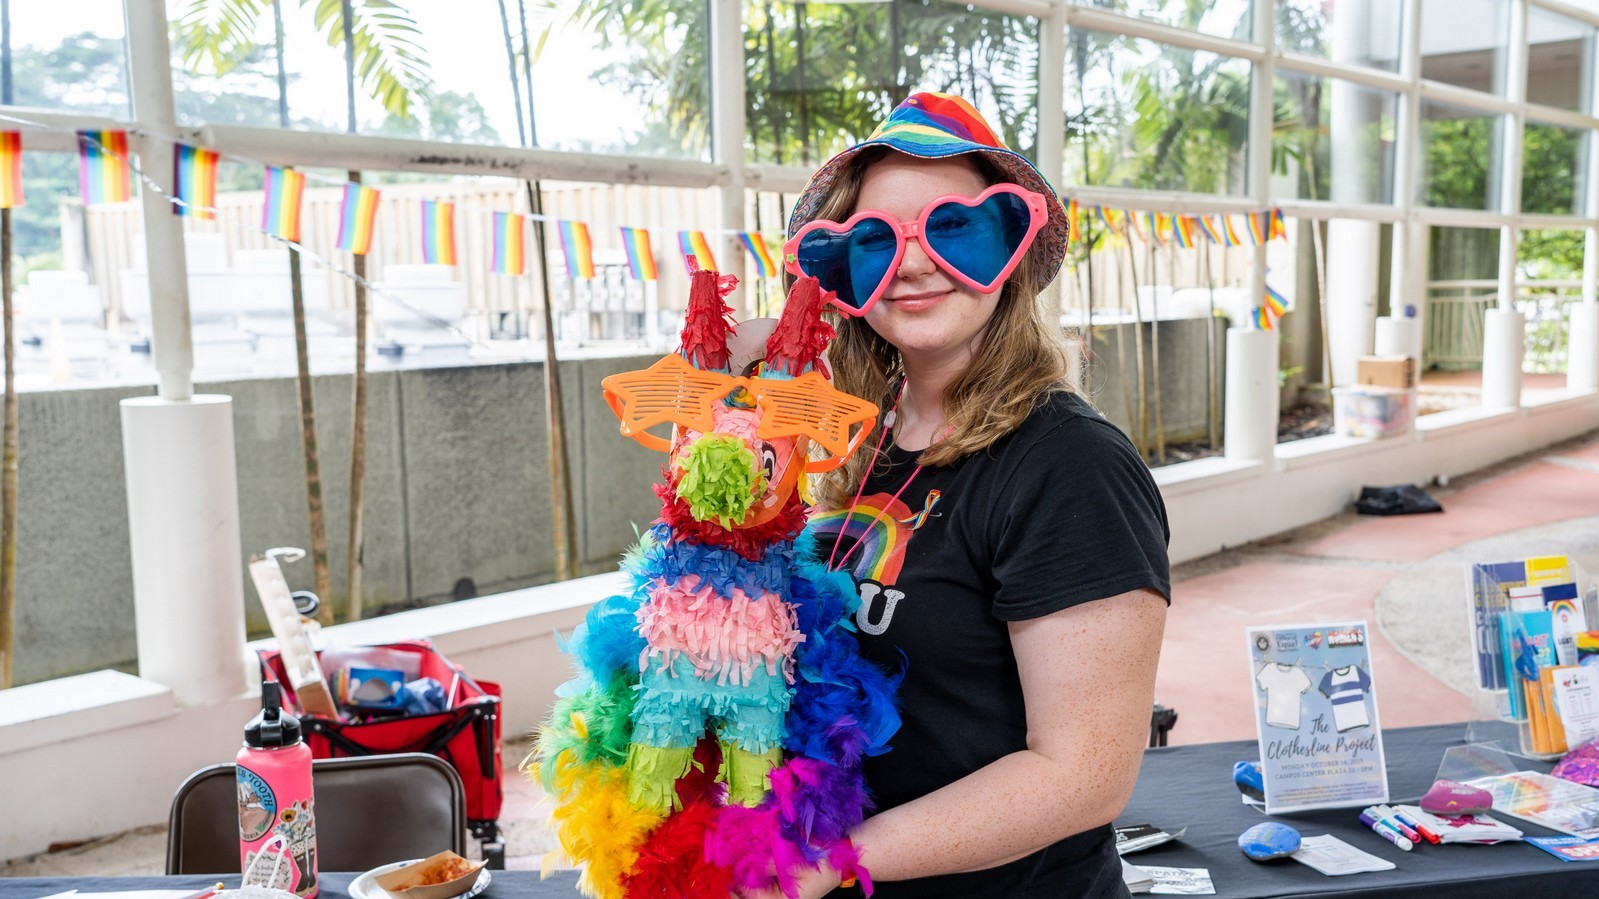 Young woman in huge rainbow colored sun glasses with lenses shaped like hearts. She holds a animal figure made of fringy rainbow colored paper.